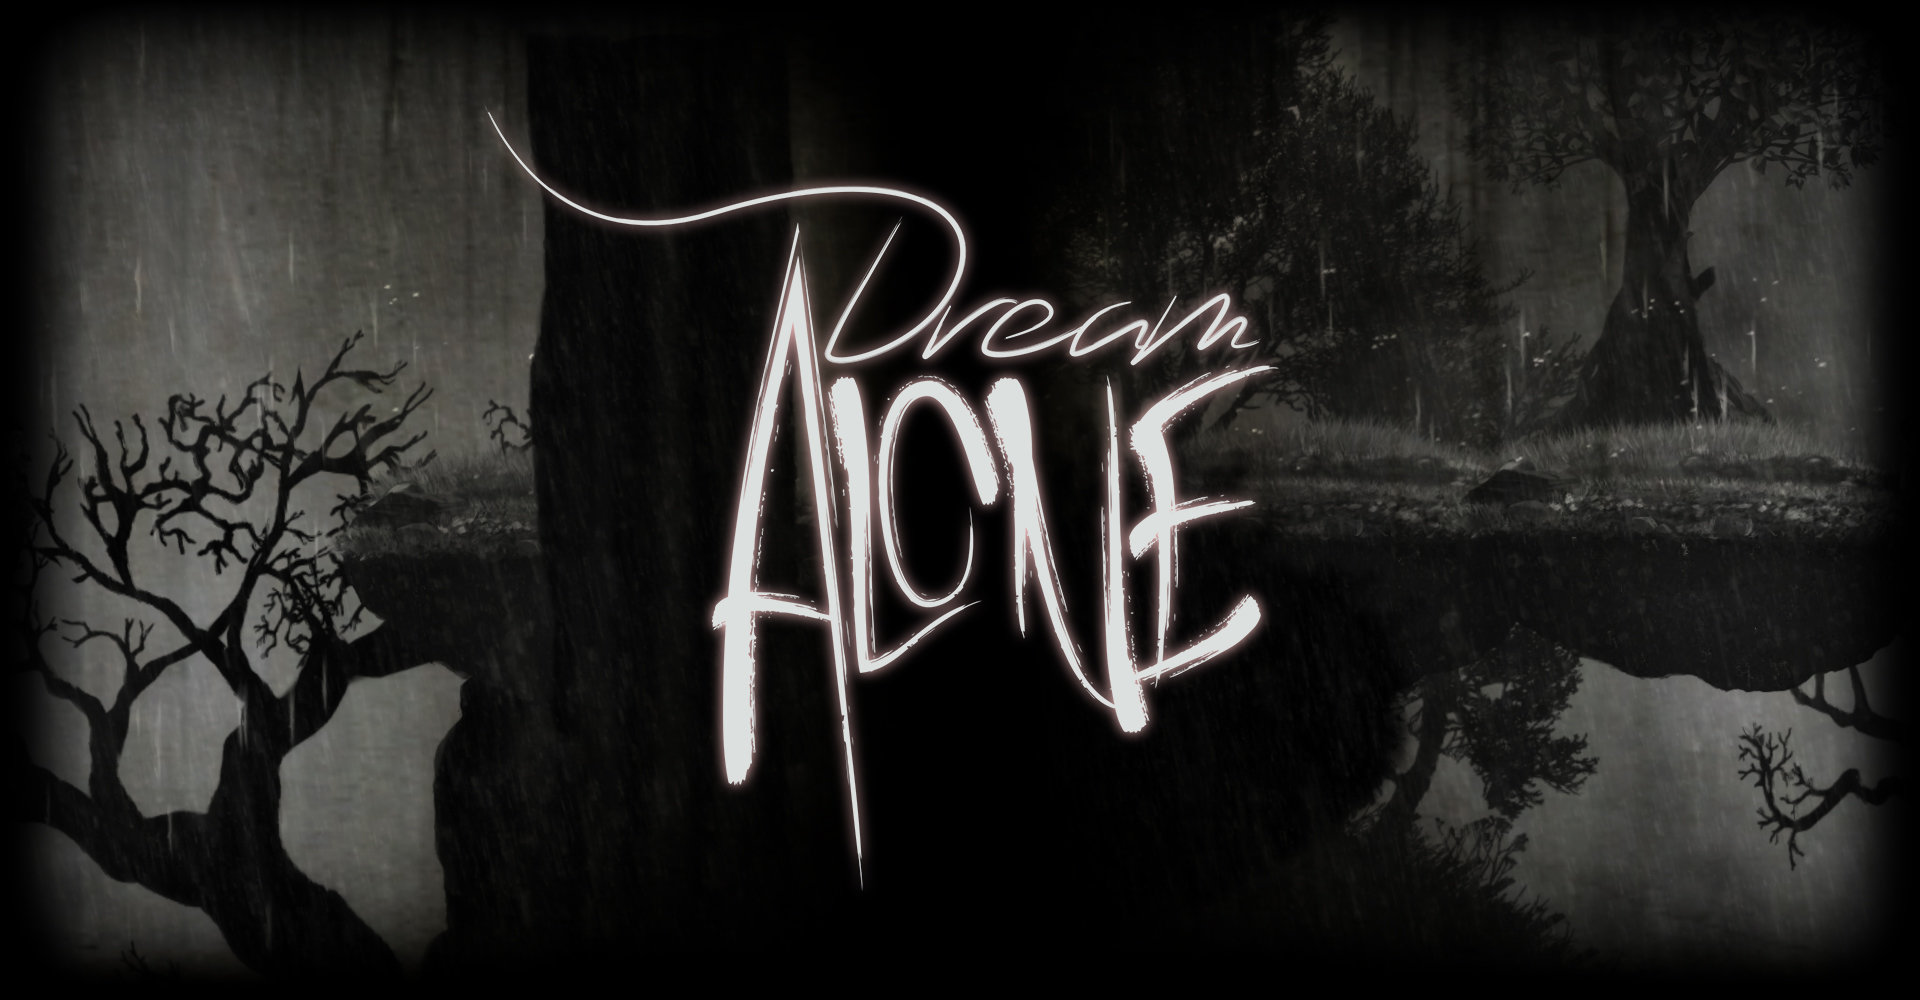 DREAM ALONE: 2D platformer is coming to Nintendo Switch!